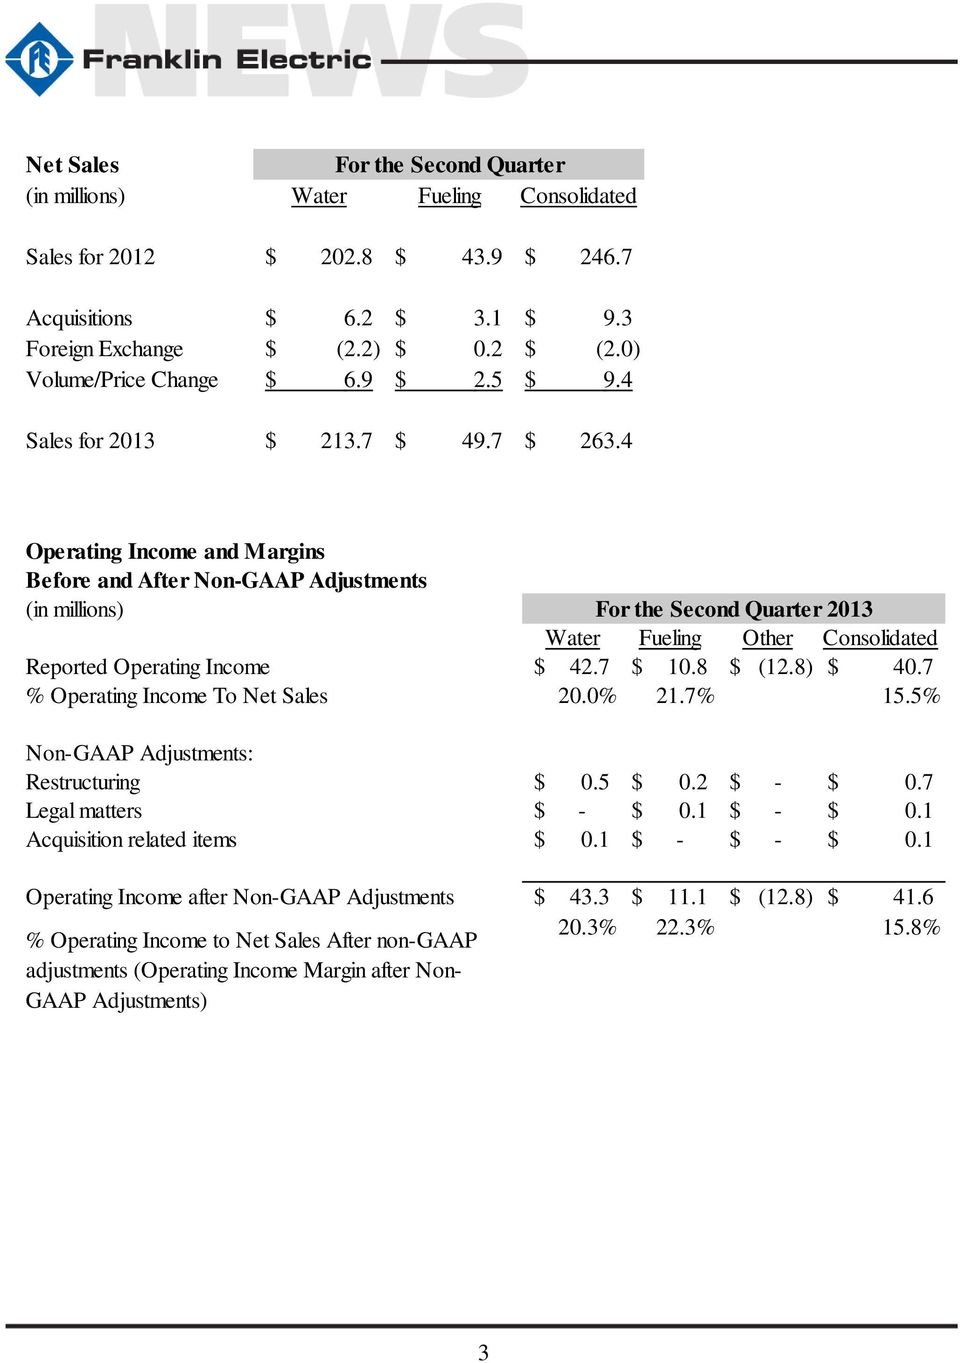 4 Operating Income and Margins Before and After Non-GAAP Adjustments (in millions) For the Second Quarter 2013 Water Fueling Other Consolidated Reported Operating Income $ 42.7 $ 10.8 $ (12.8) $ 40.